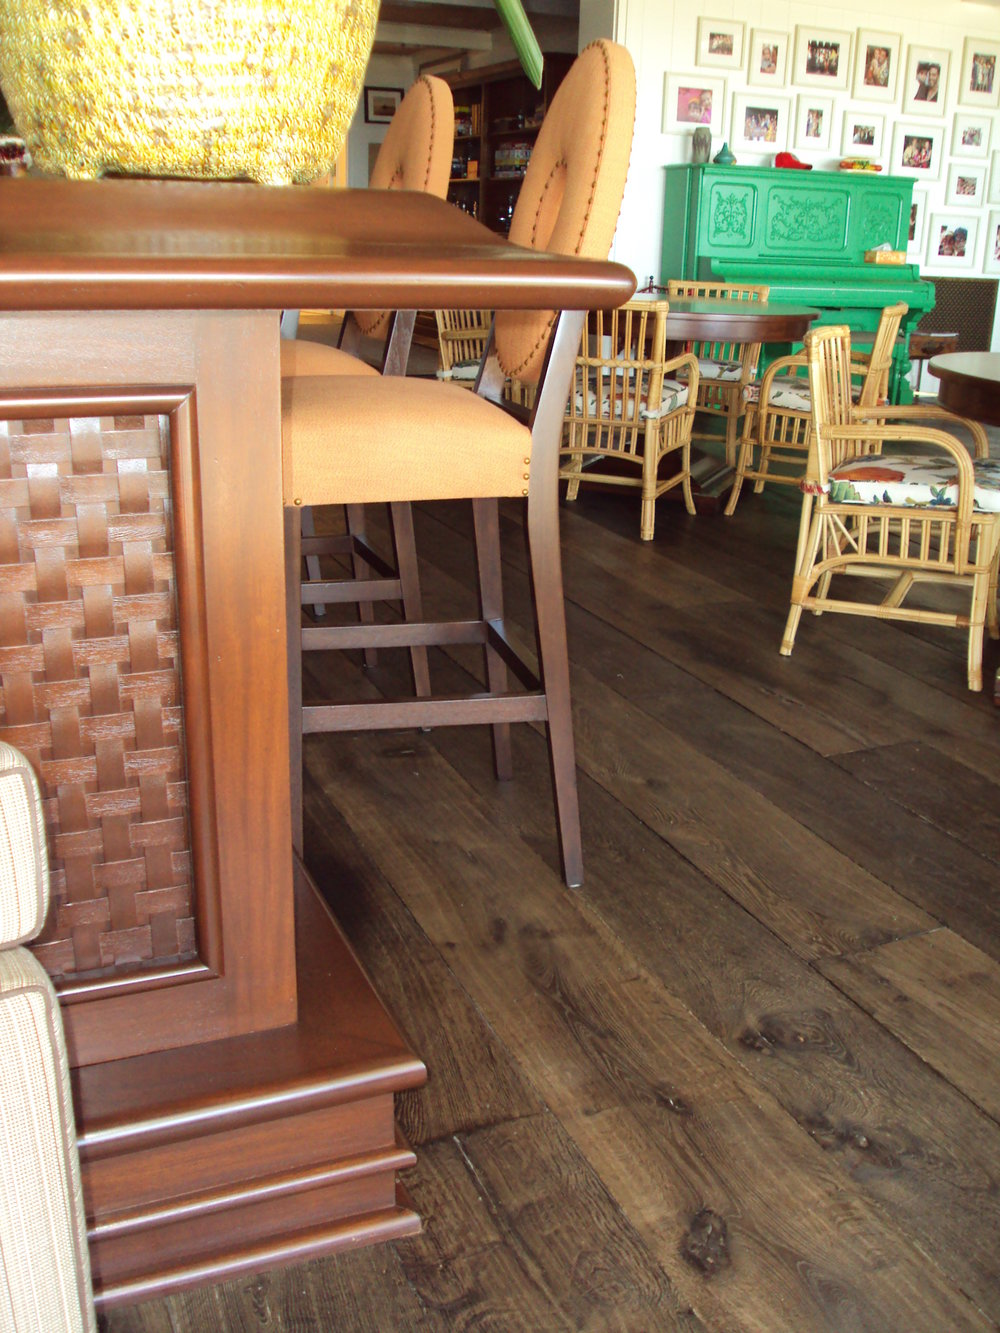 Pub Chairs & Counter Shape.JPG